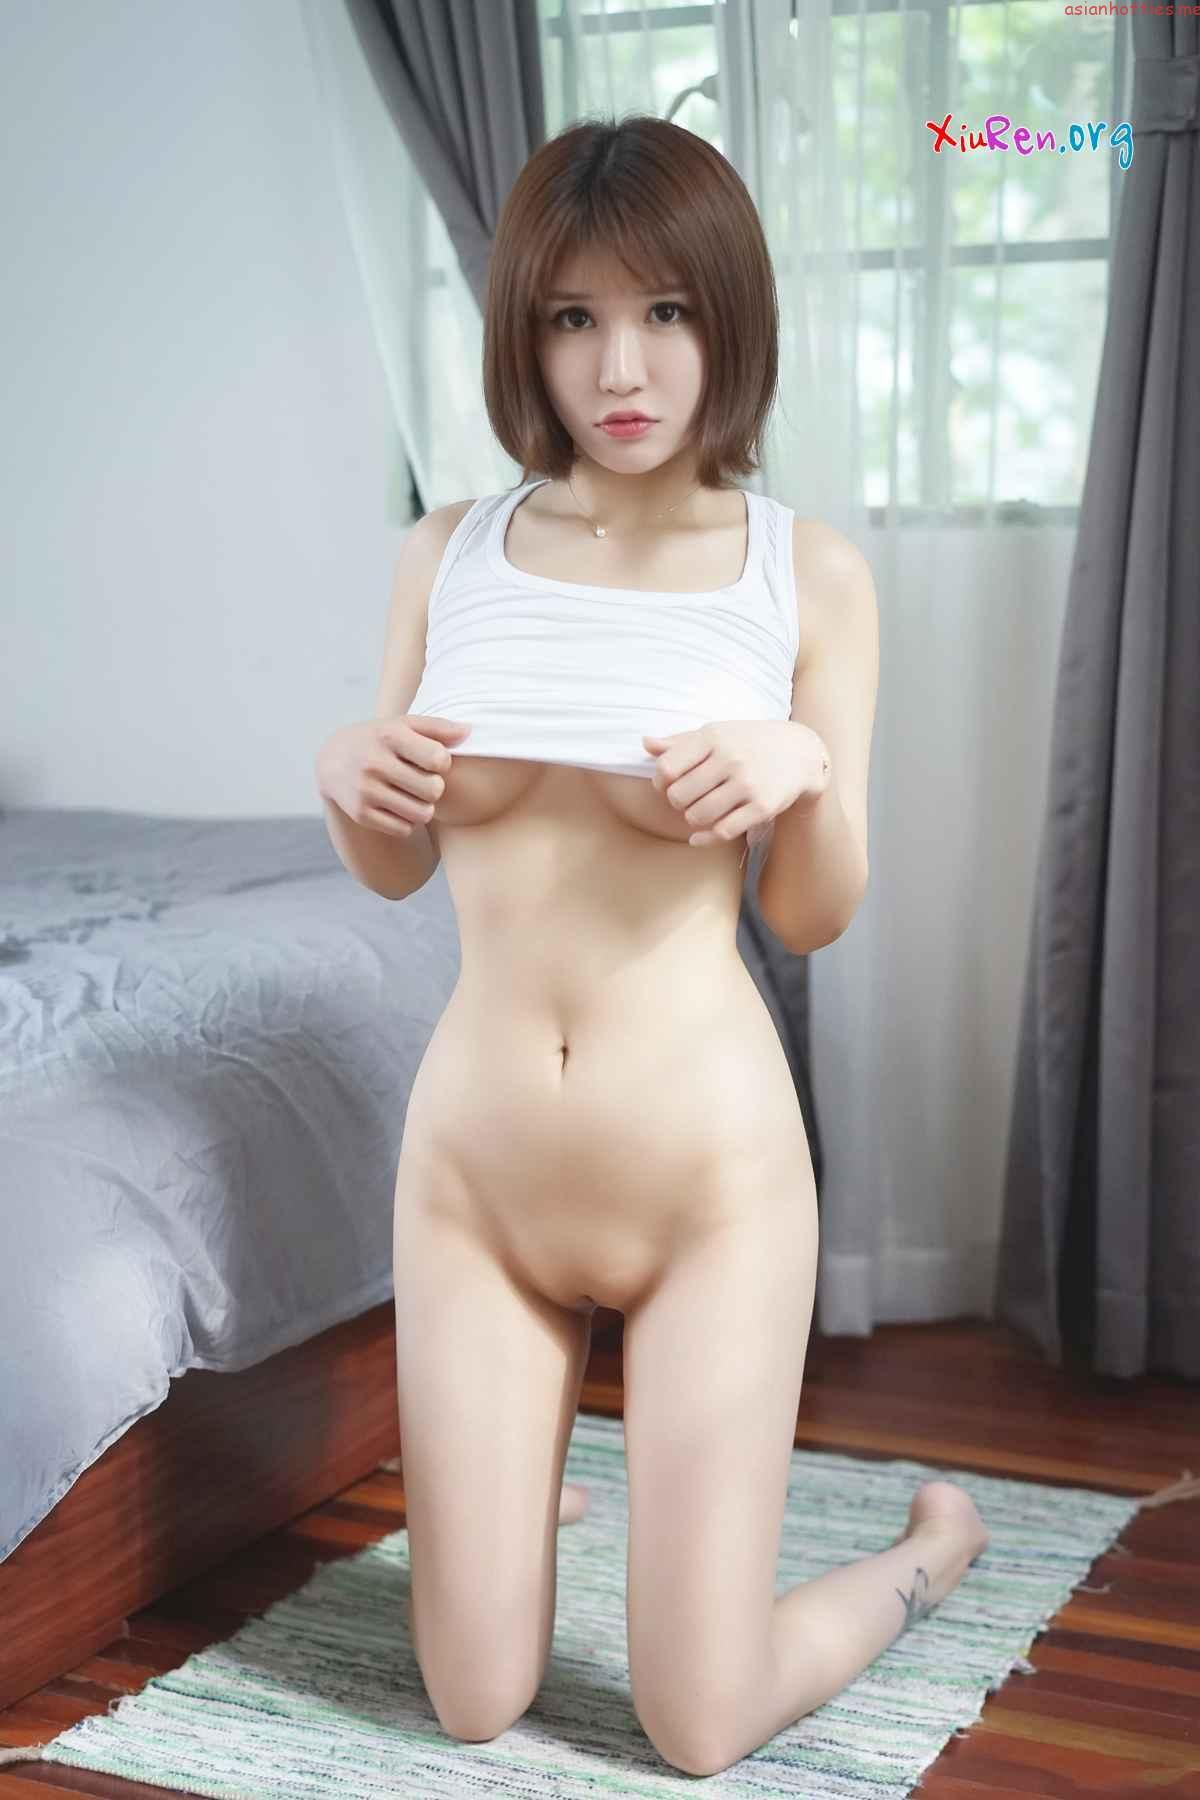 girl Nude photo chinese